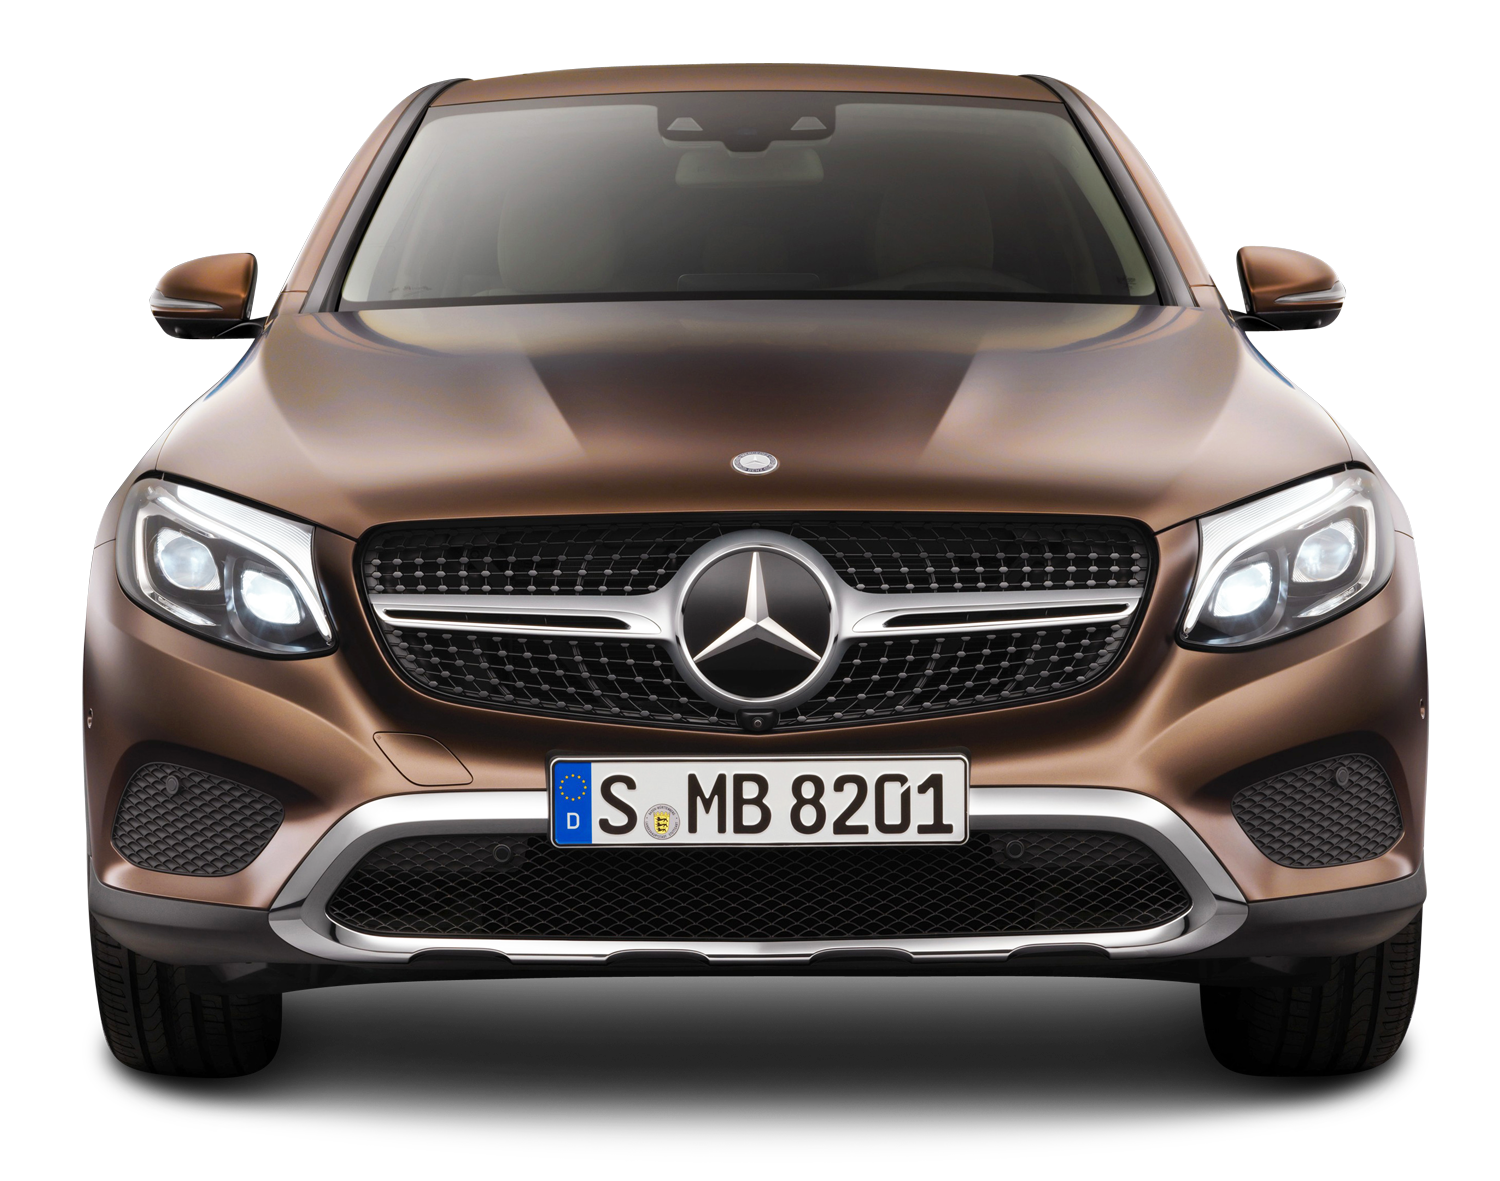 Brown Mercedes Benz GLE Coupe Front View Car PNG Image.